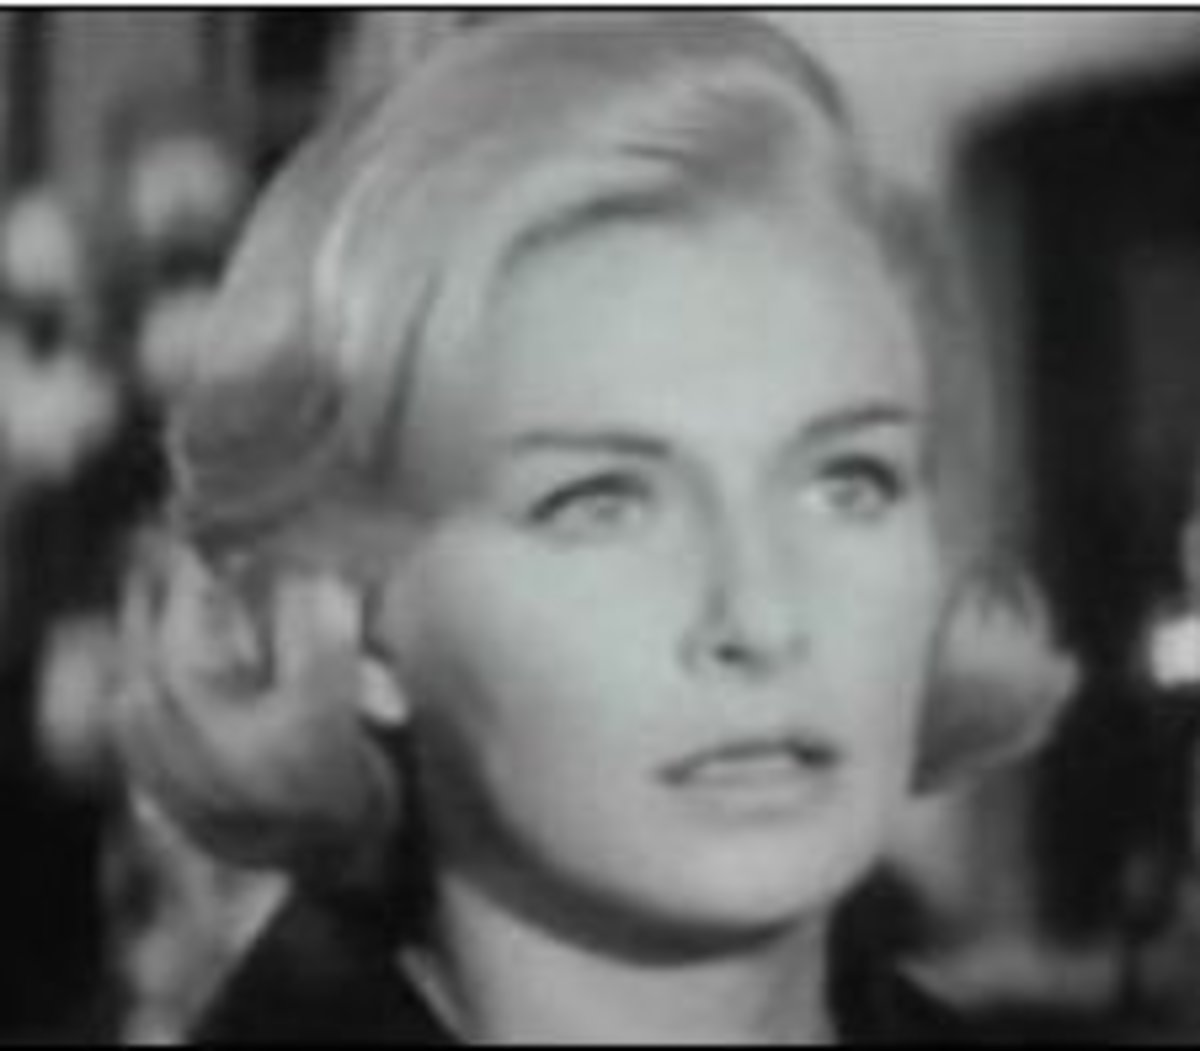 Joanne Woodward's square-shaped face is almost geometric here, with the full-bodied short waves adding roundness and some dashing asymmetry.